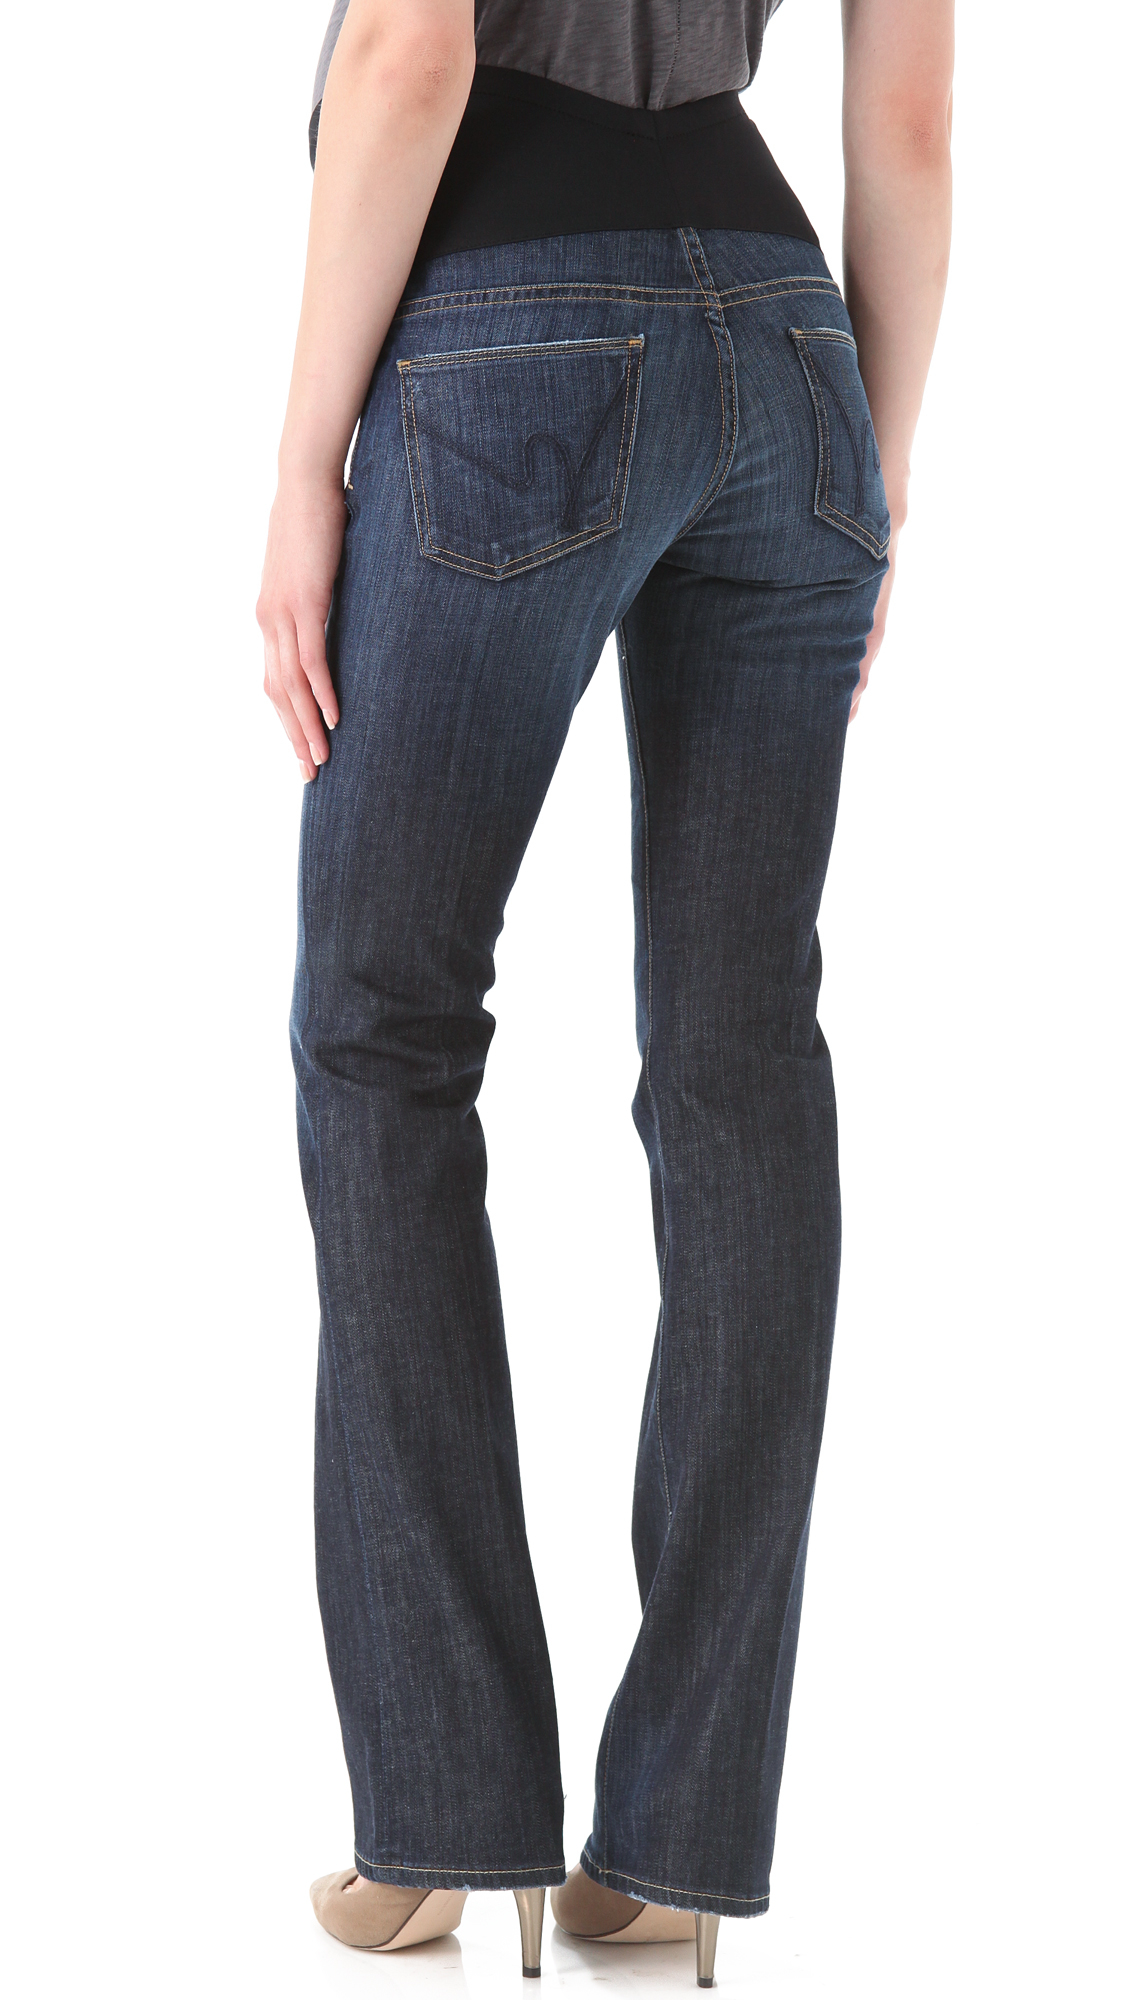 Citizens of humanity Kelly Boot Cut Maternity Jeans - Pacific in ...